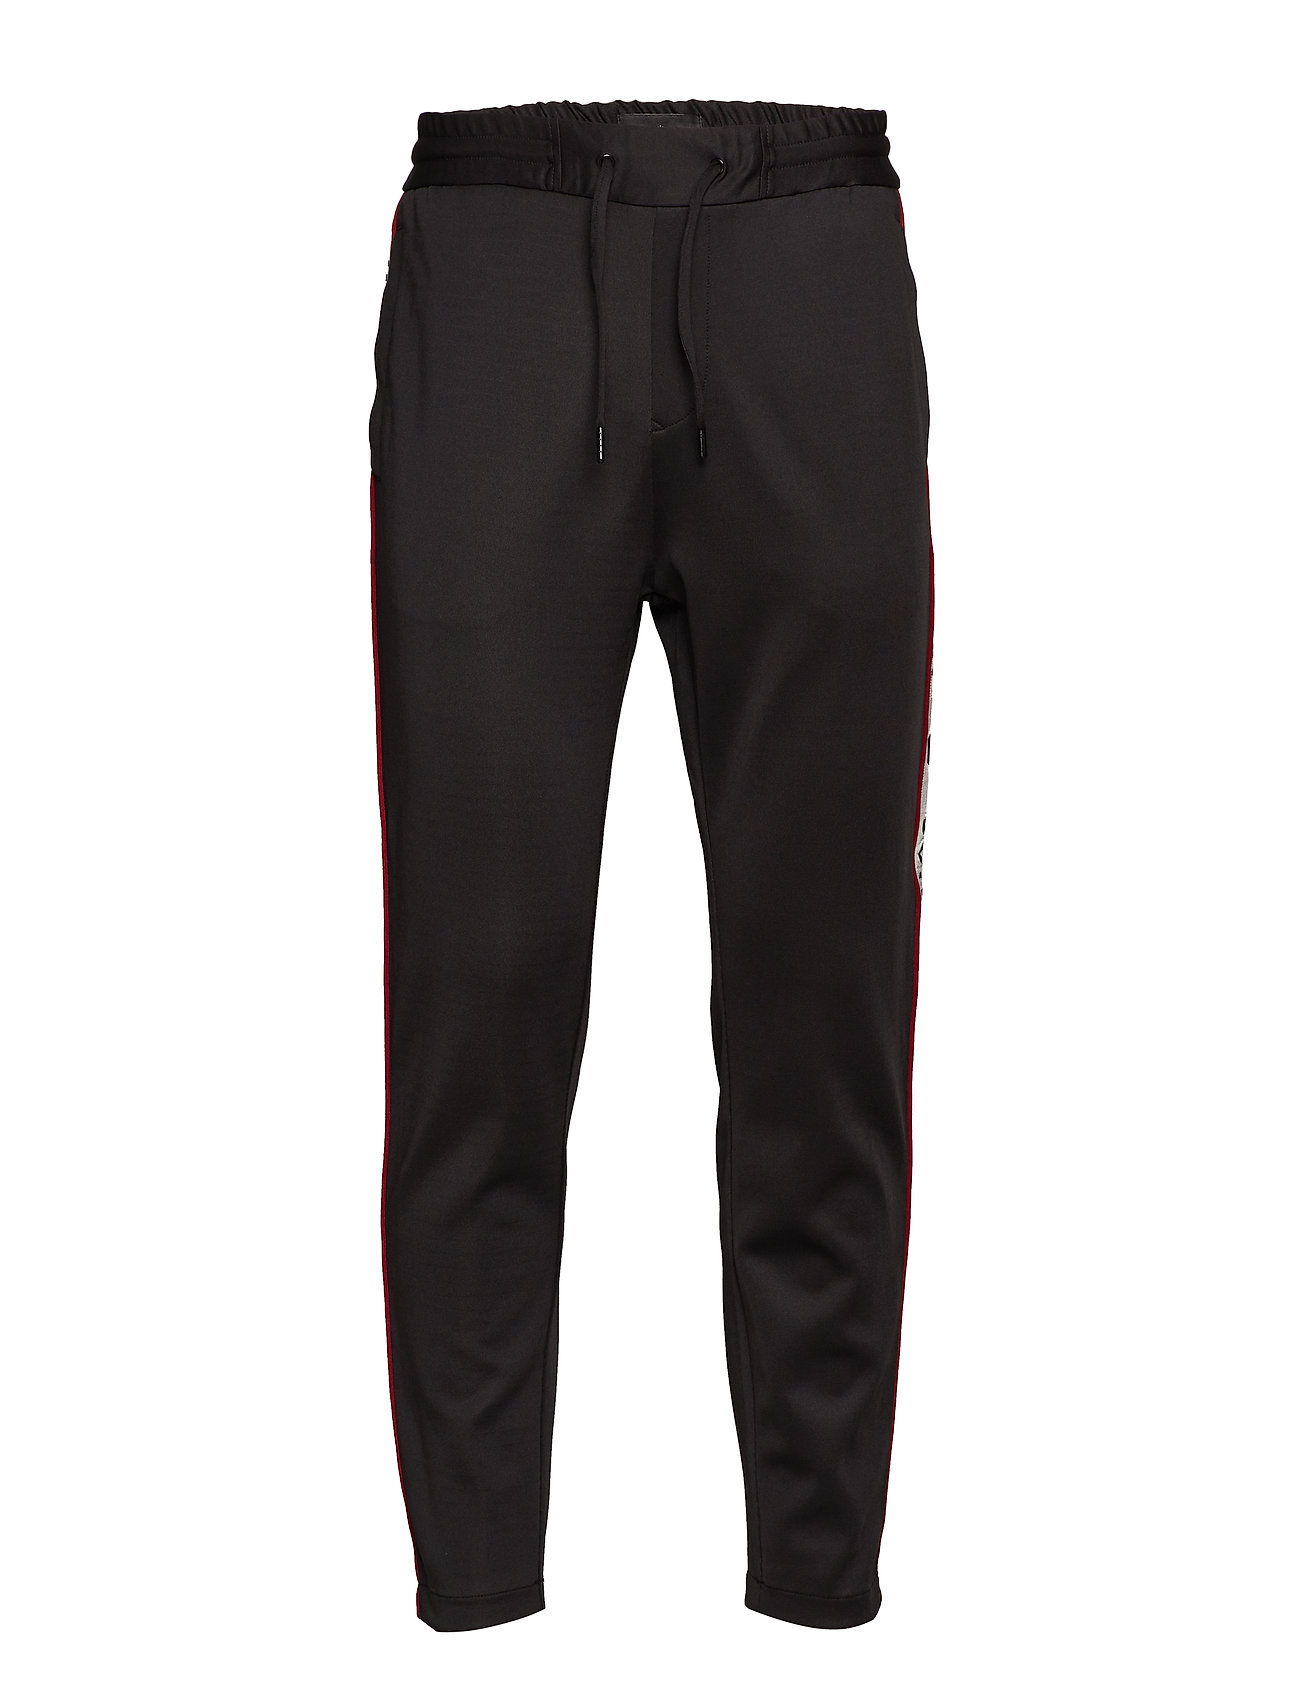 JUNK de LUXE Logo tape track pants - BLACK